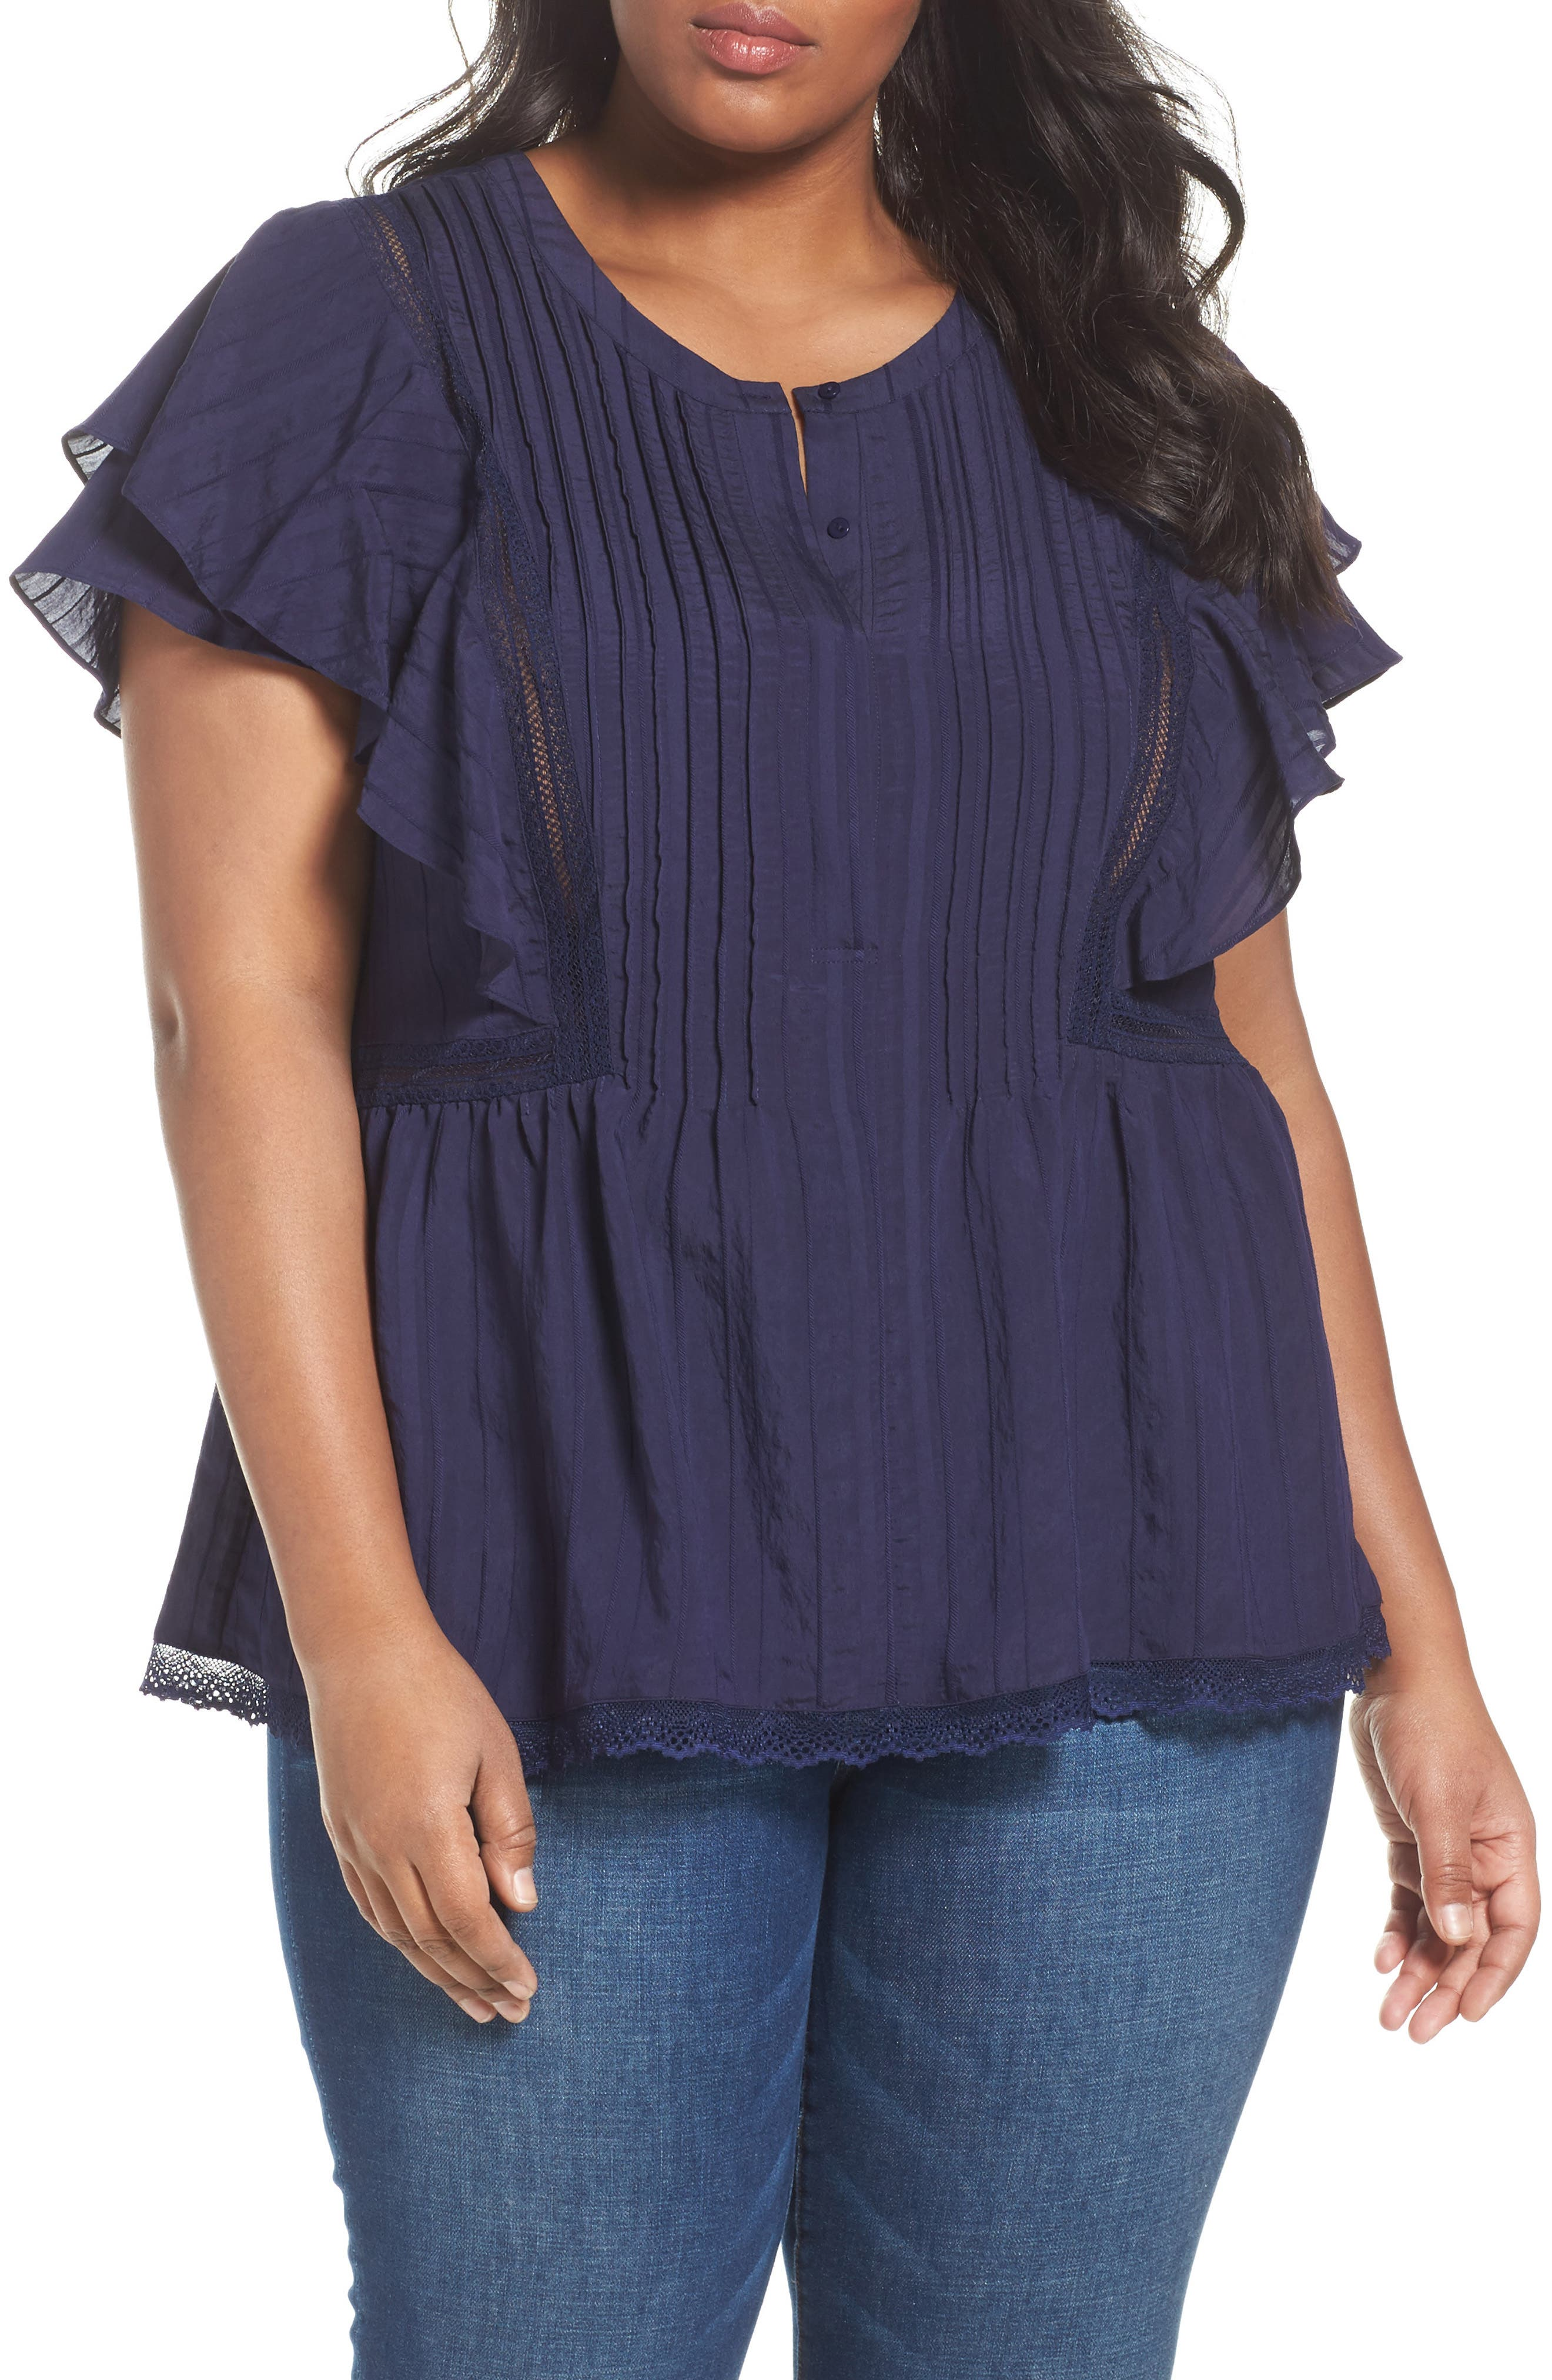 Alternate Image 1 Selected - Sejour Lace Trim Pintuck Pleated Top (Plus Size)